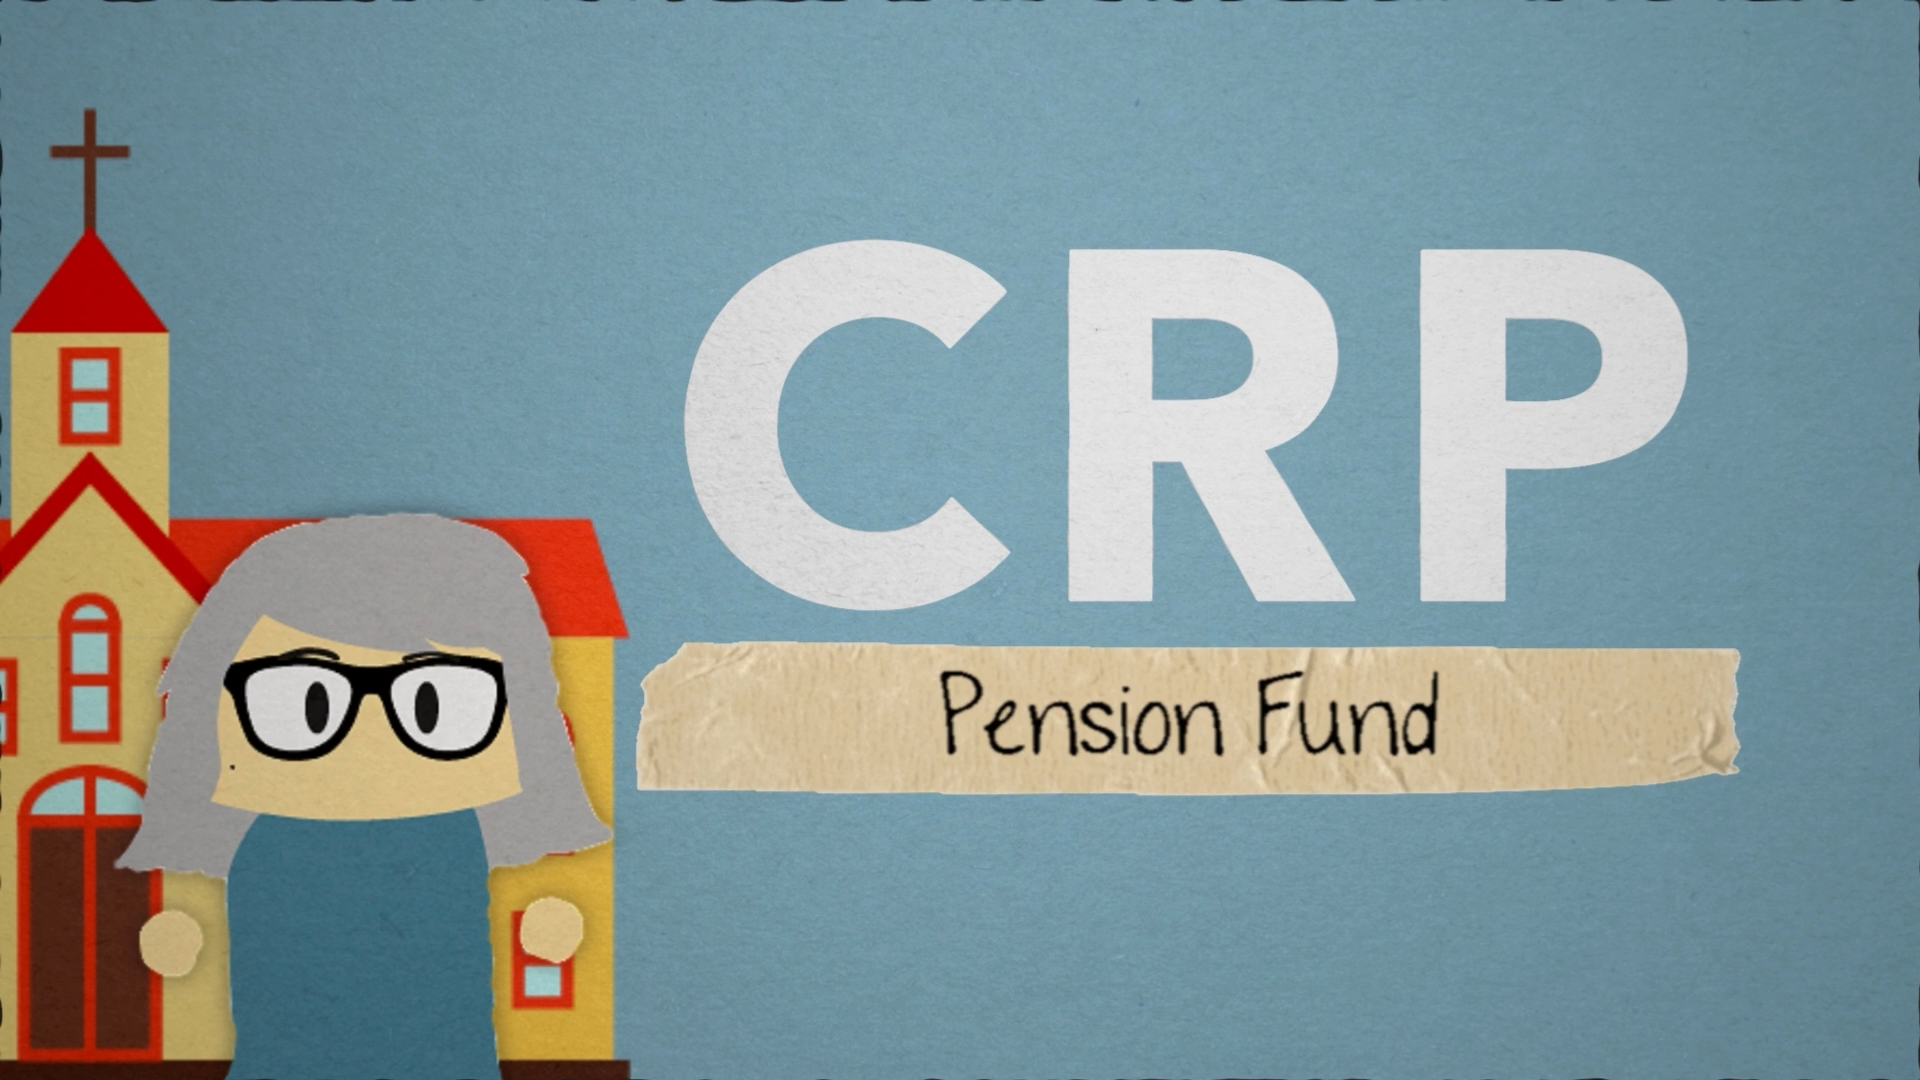 Alice and the Concordia Retirement Plan pension fund